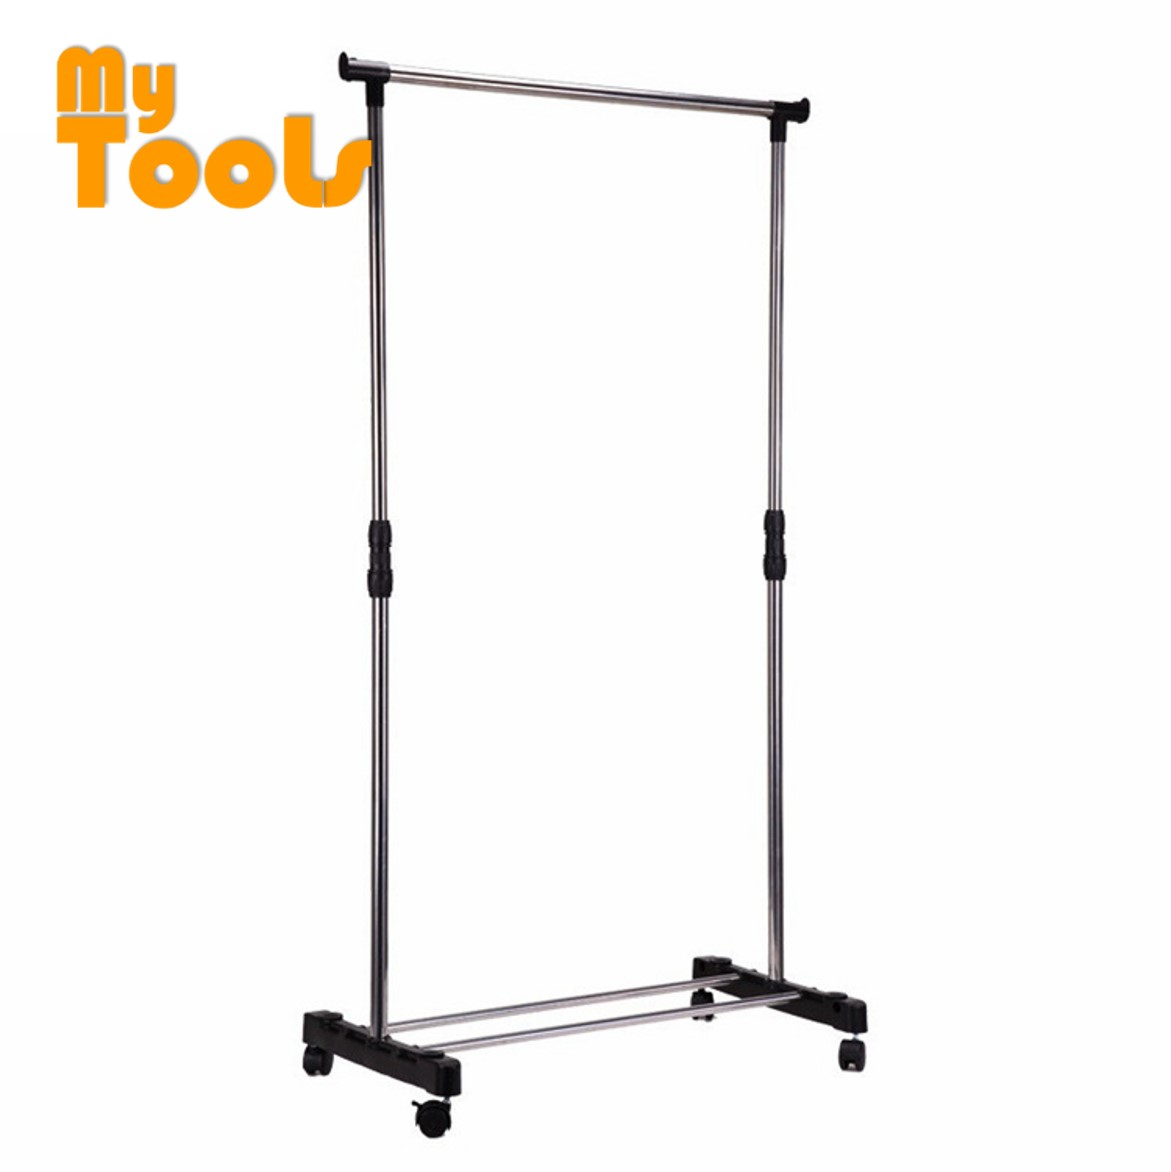 Mytools Single Adjustable Stainless Steel Garment Hanger Clothes Hanger Drying Shoes Rack W Wheels